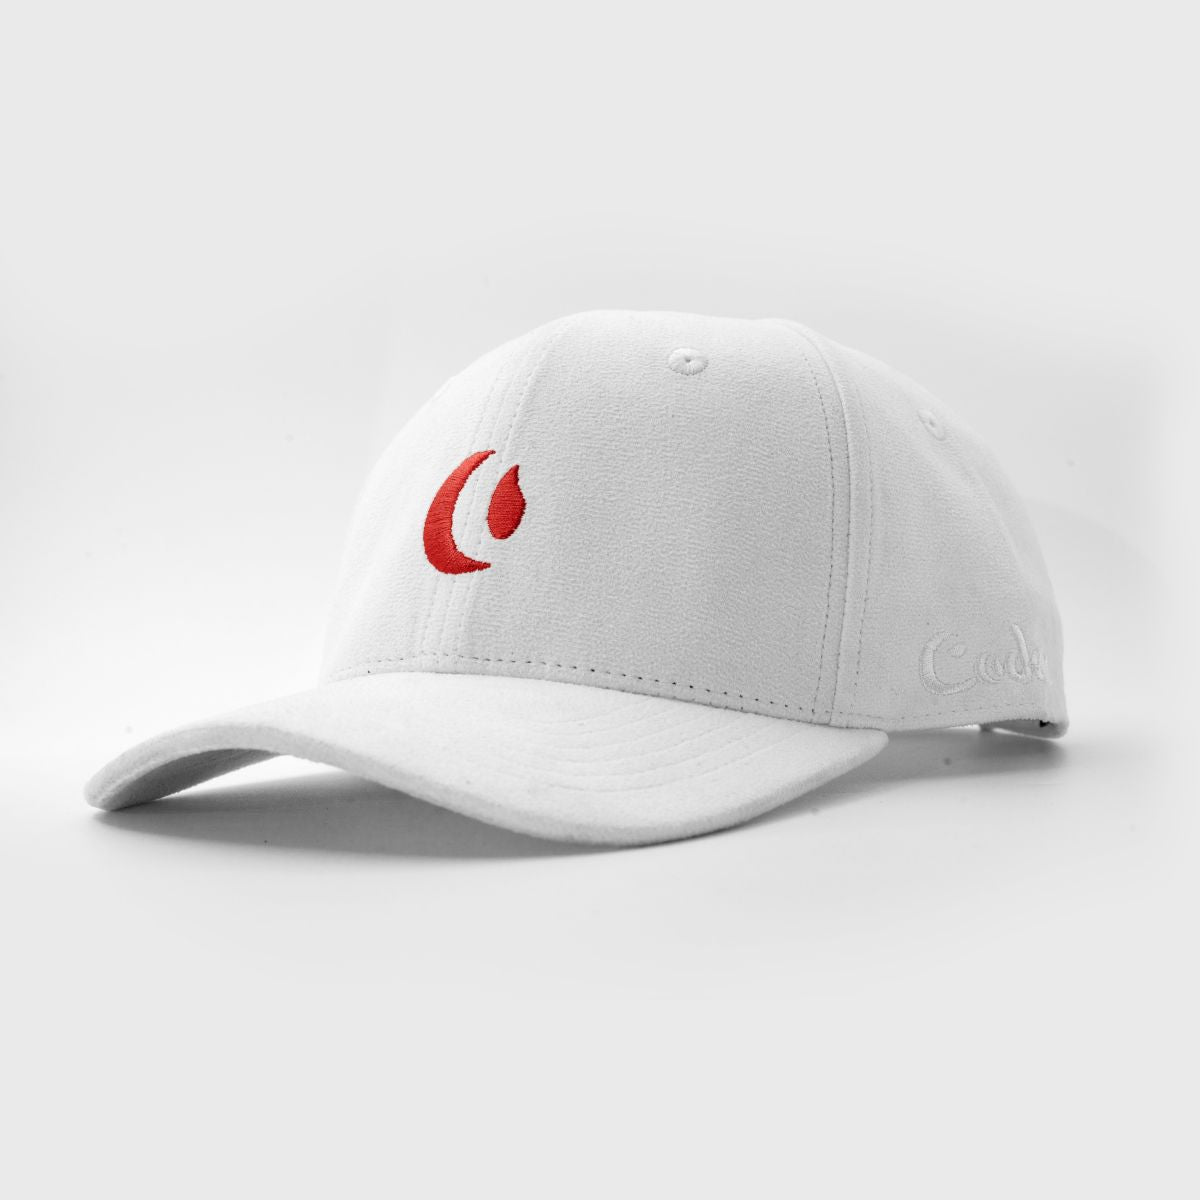 White Coden Prime Baseball Cap